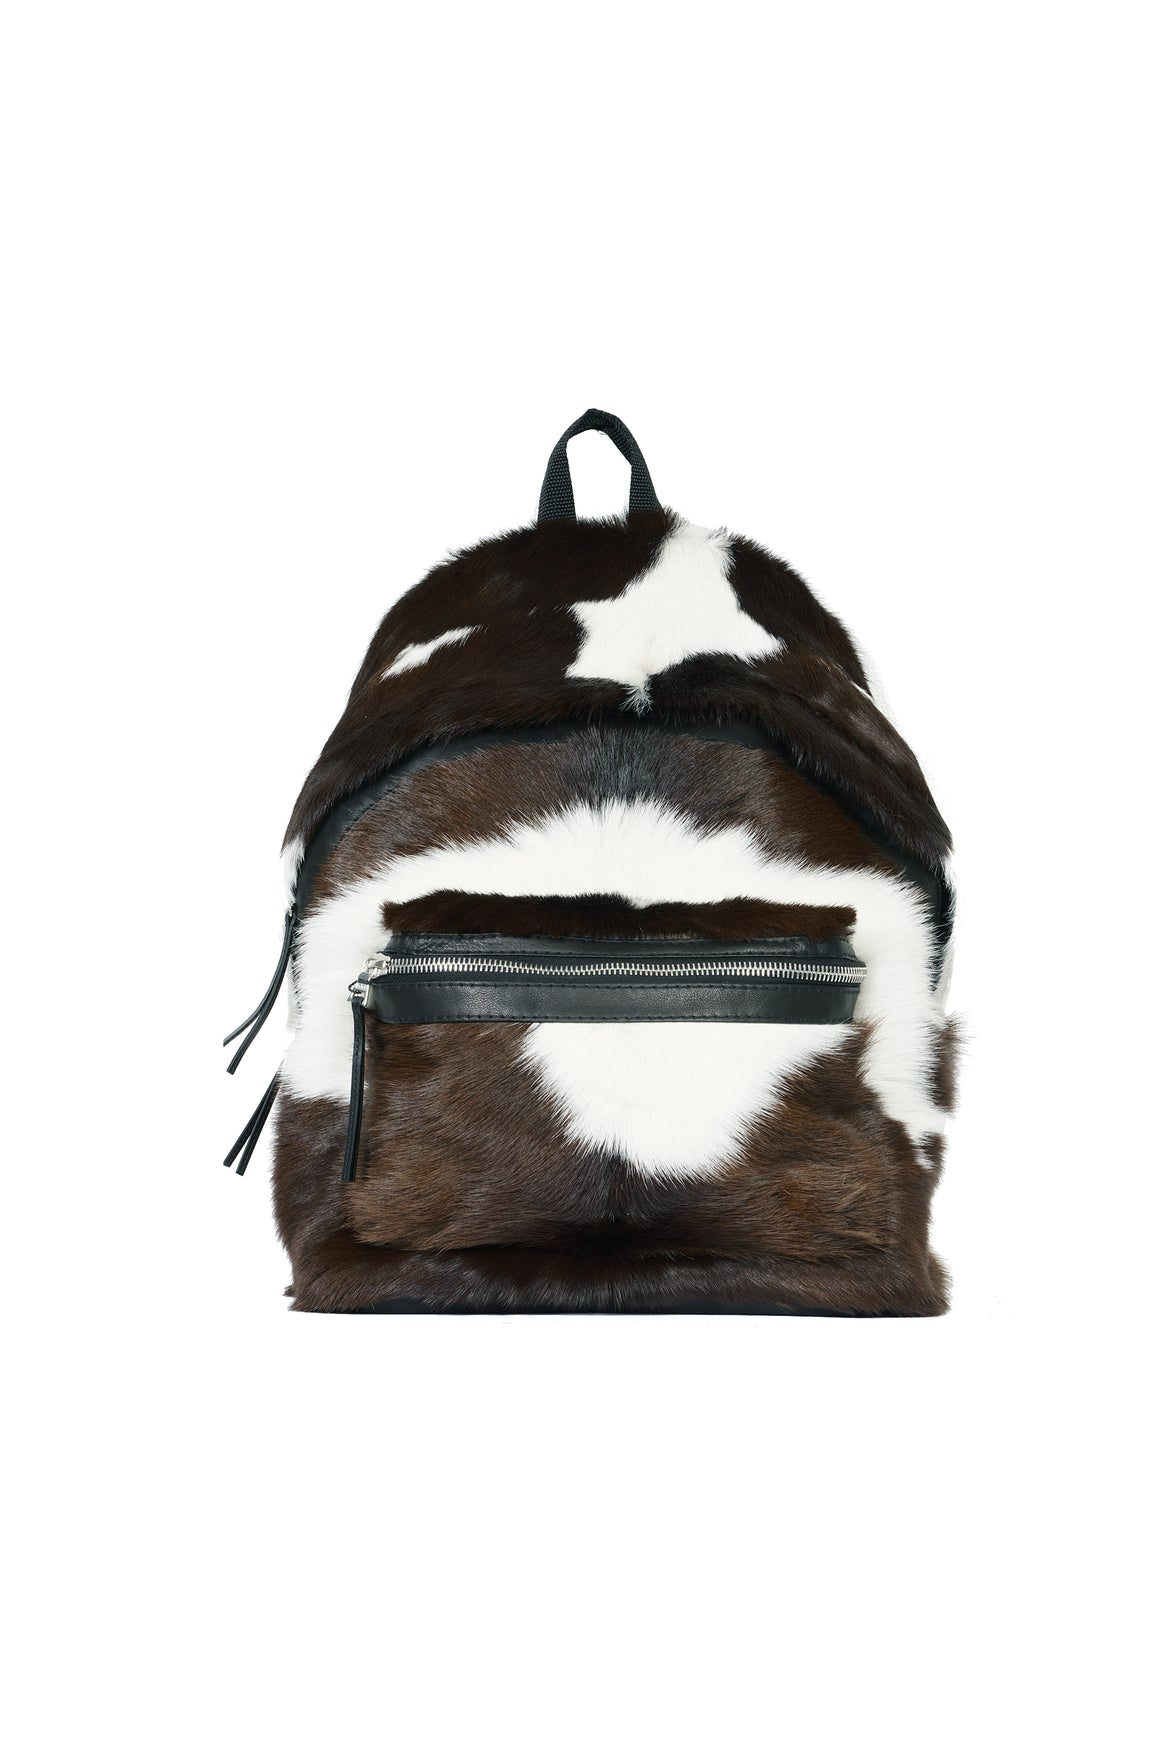 Long Hair Spotted Cow Backpack Multi Brown / White